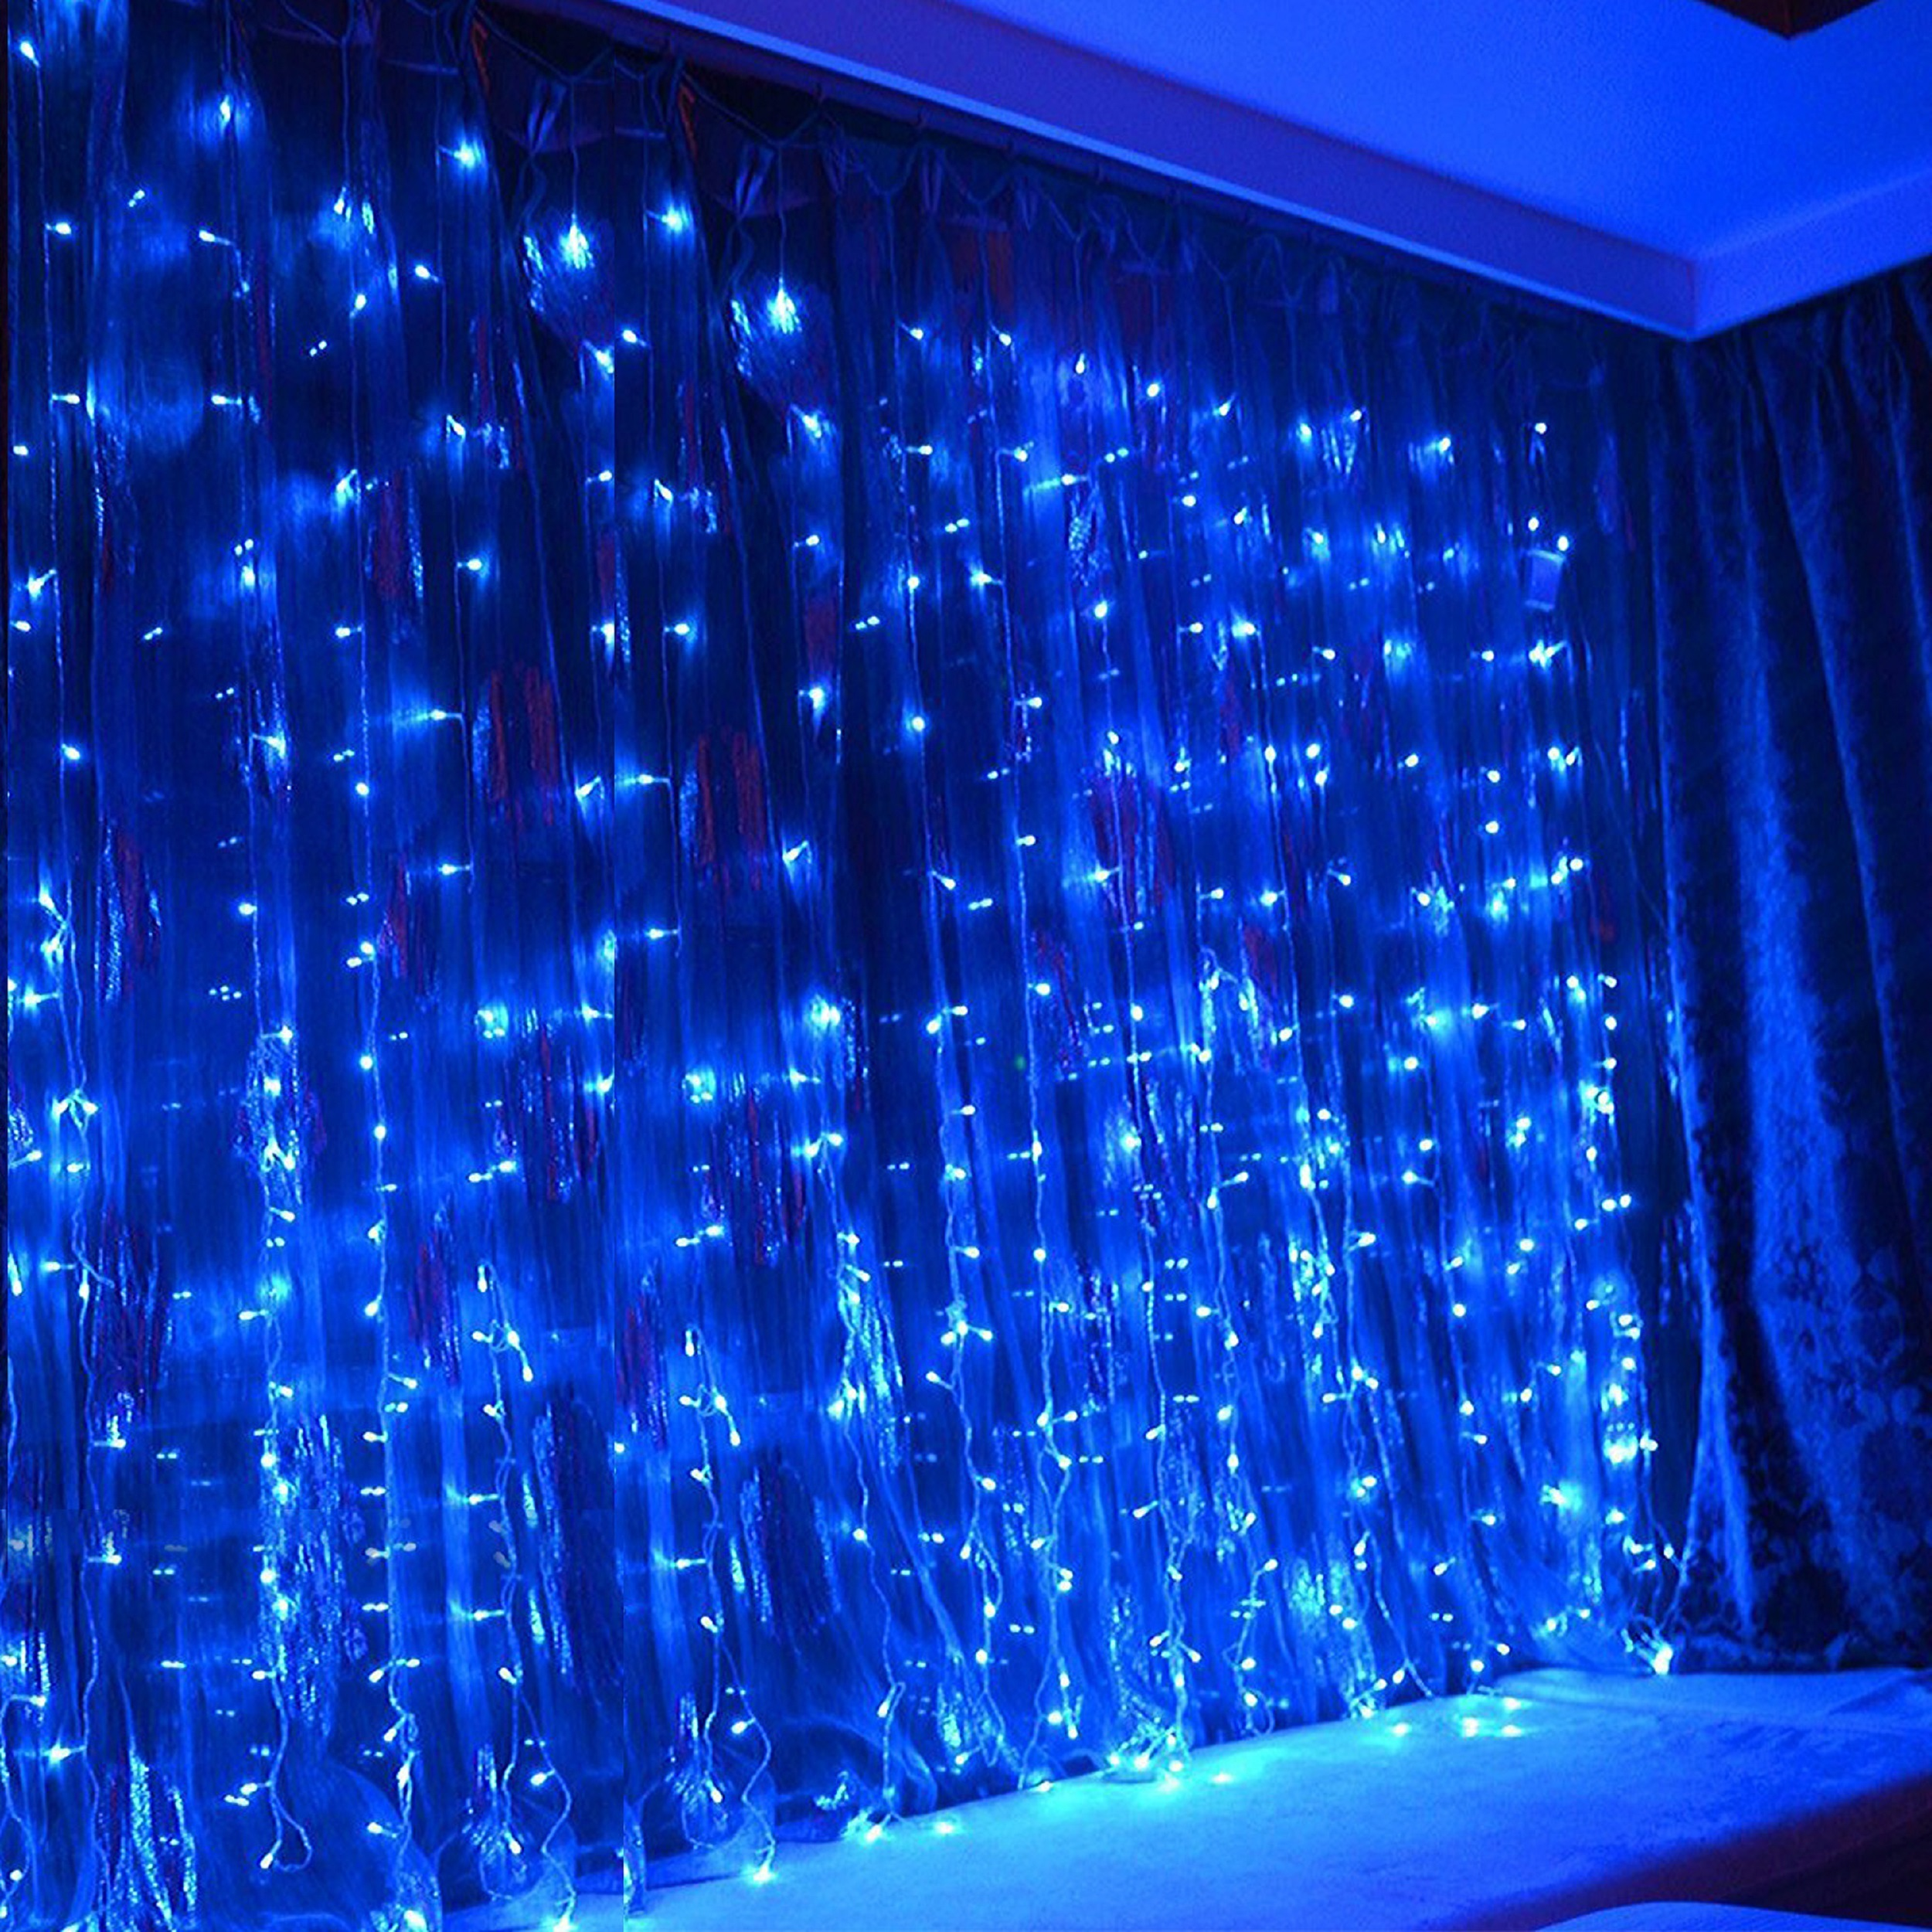 TORCHSTAR 9.8ft x 9.8ft LED Curtain Lights, Starry Christmas String Light, Indoor/Outdoor Decoration for Festival, Wedding, Party, Living Room, Bedroom, Blue